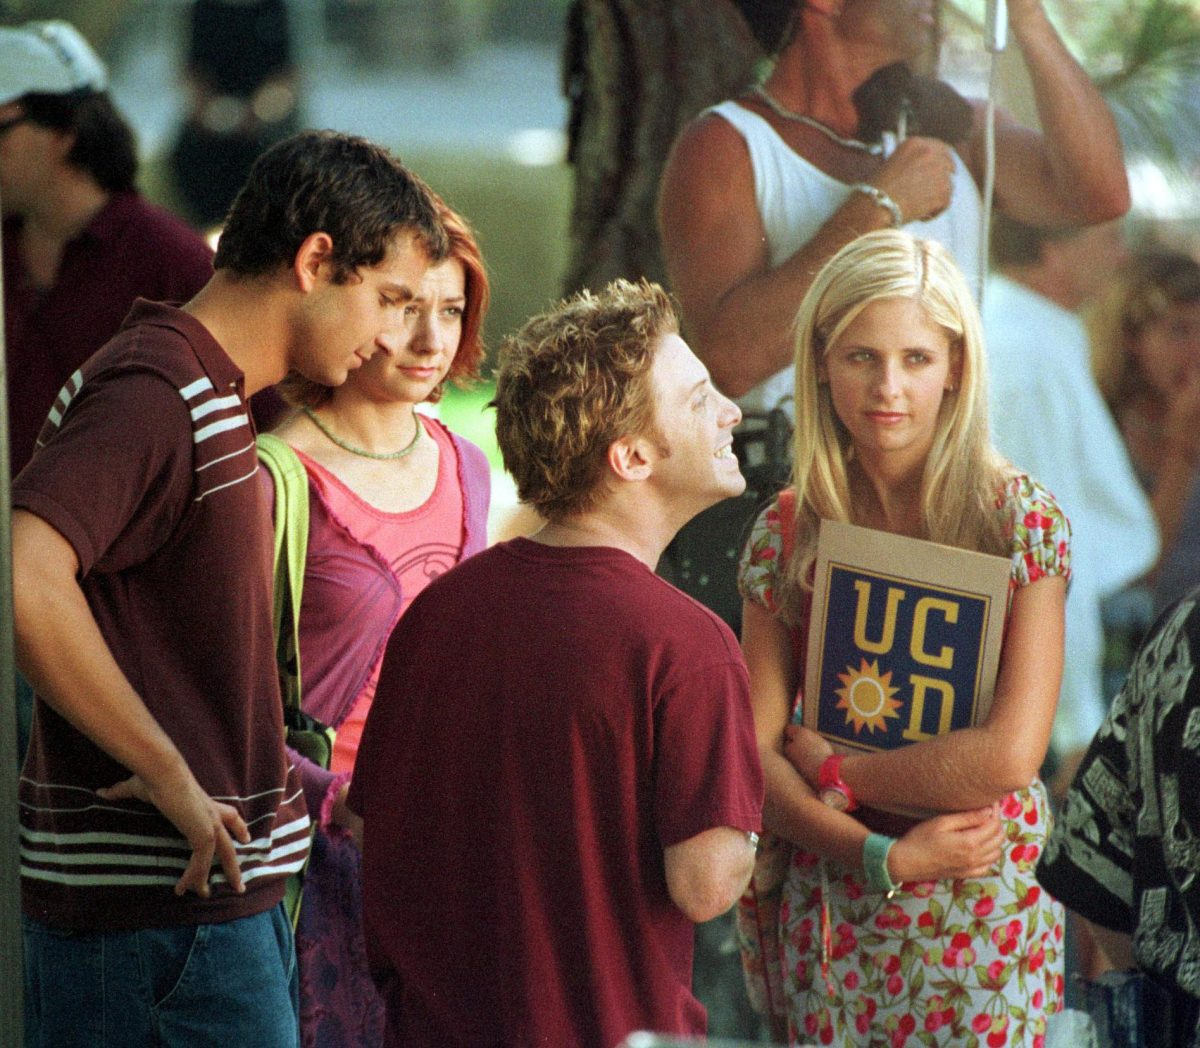 Sarah Michelle Gellar and other 'Buffy the Vampire Slayer' cast members